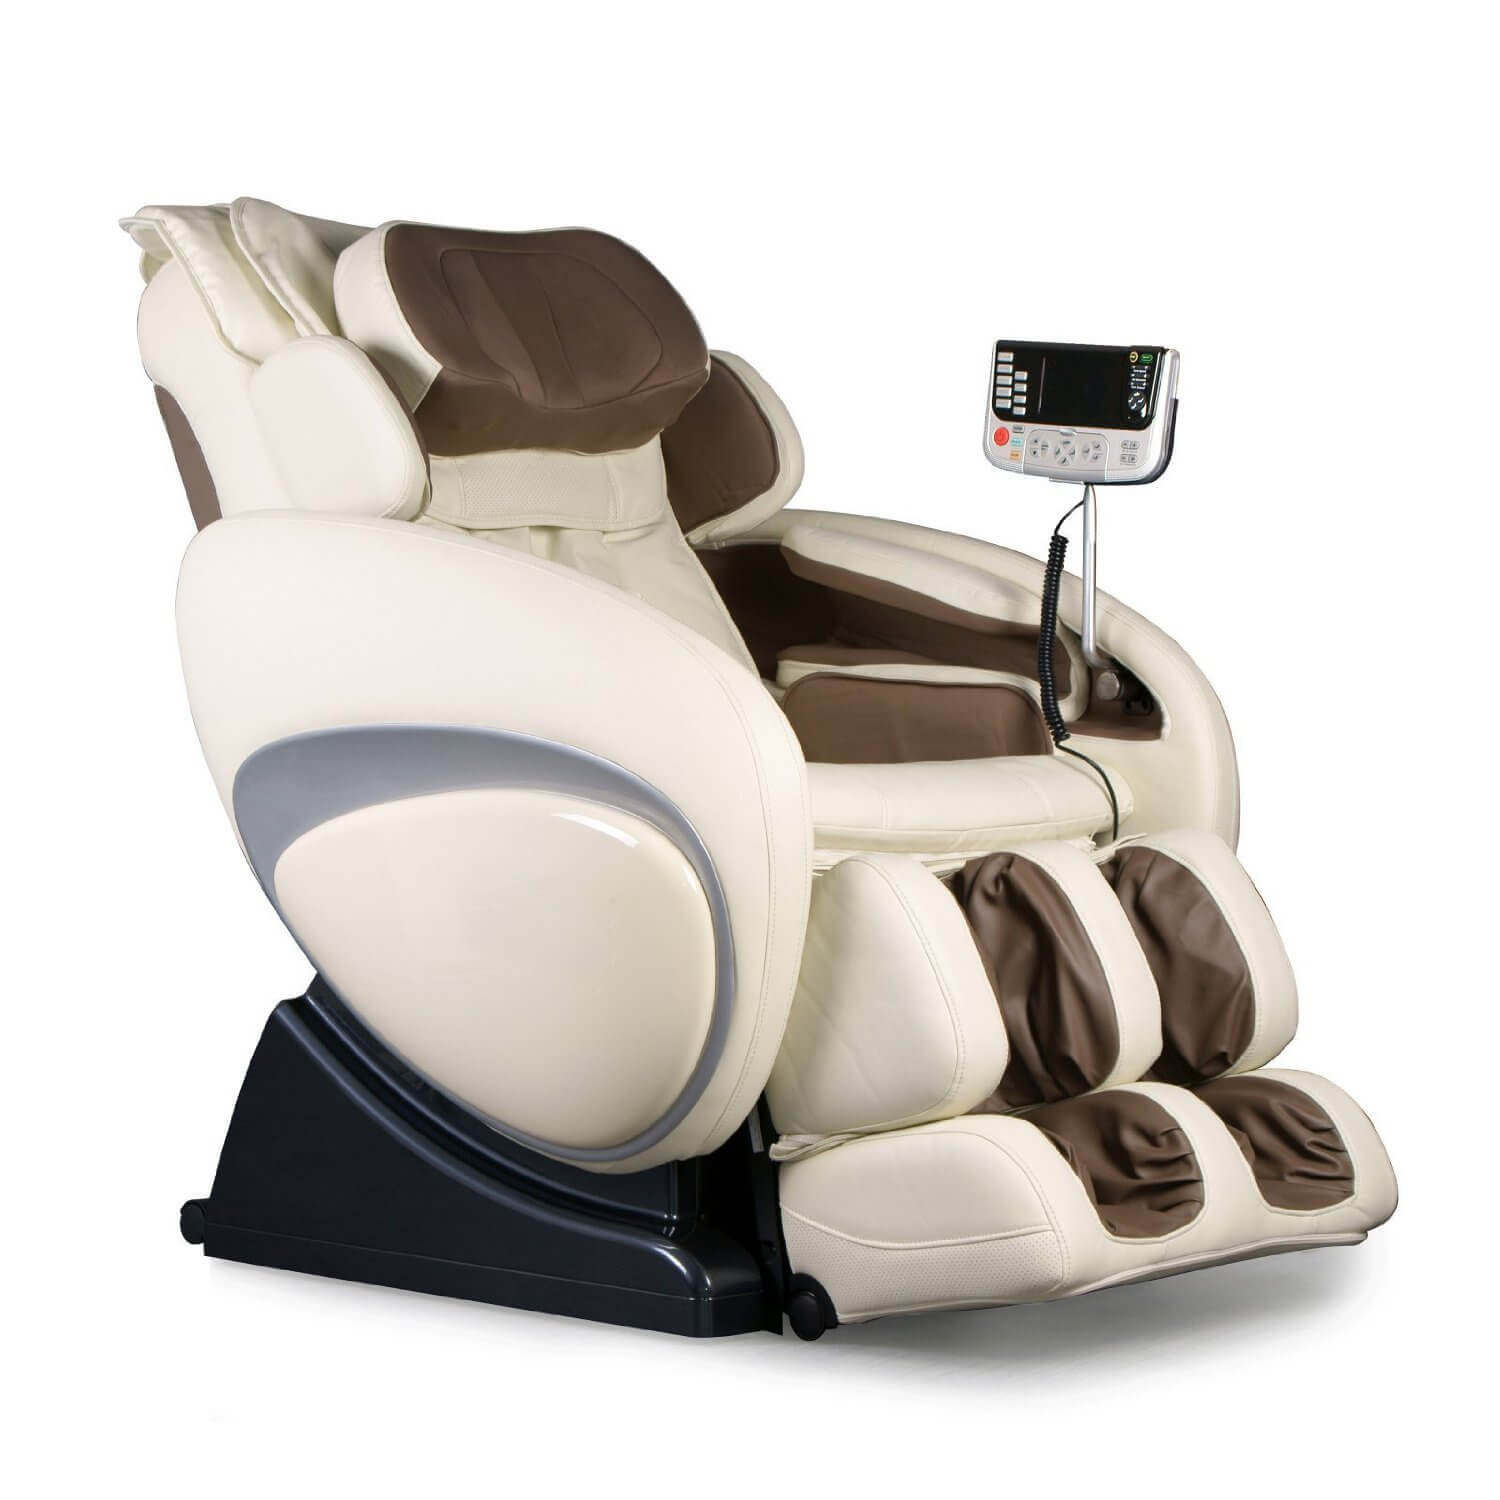 massage chairs reviews deck chair glides top 8 best 2018 reviewed buyer s guide osaki os 4000 review